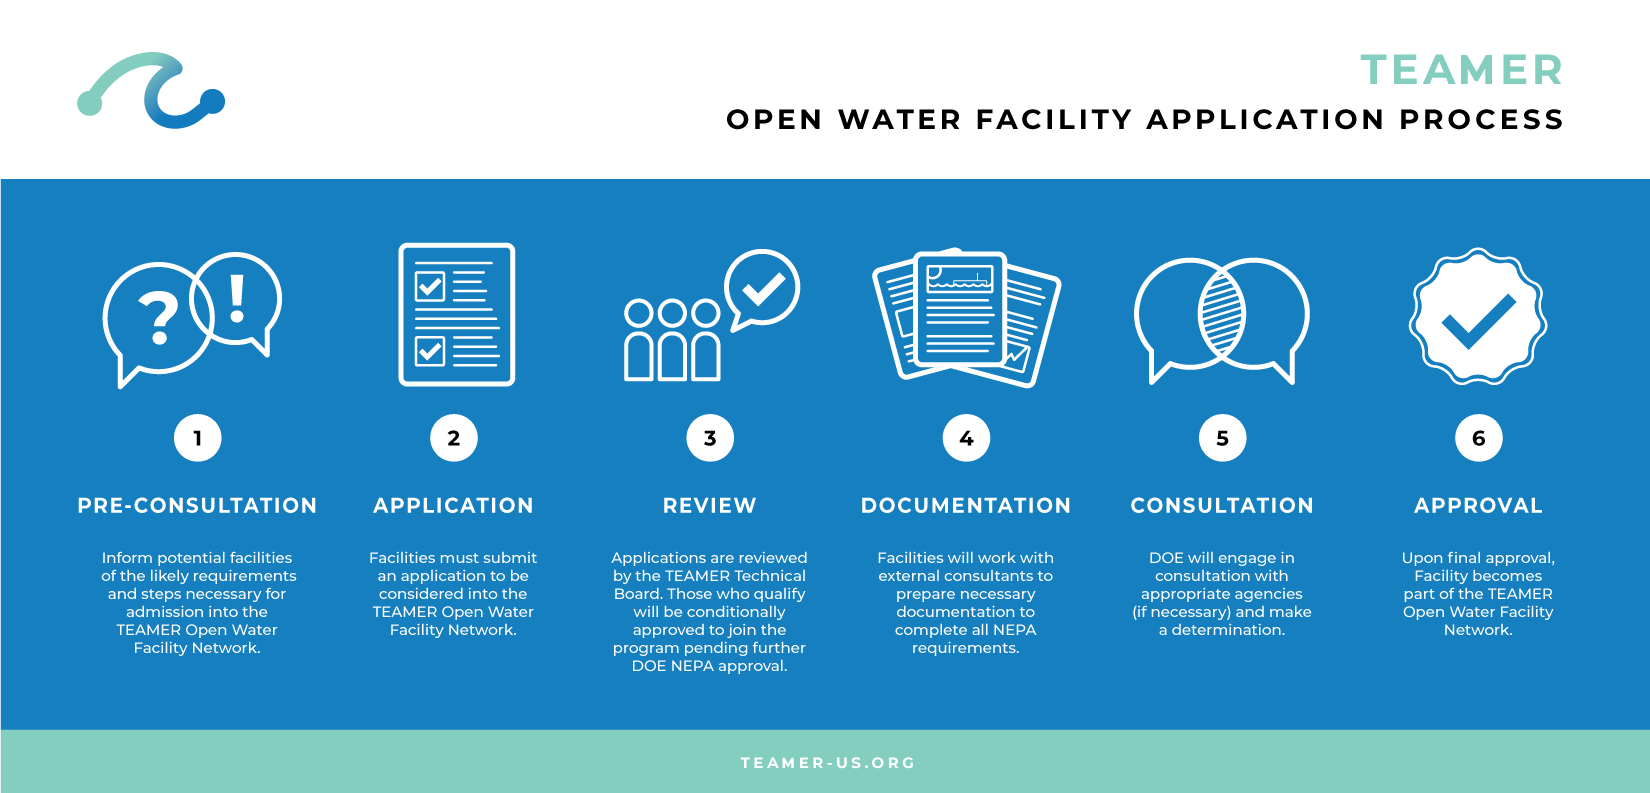 Open Water Facility Application Process infographic